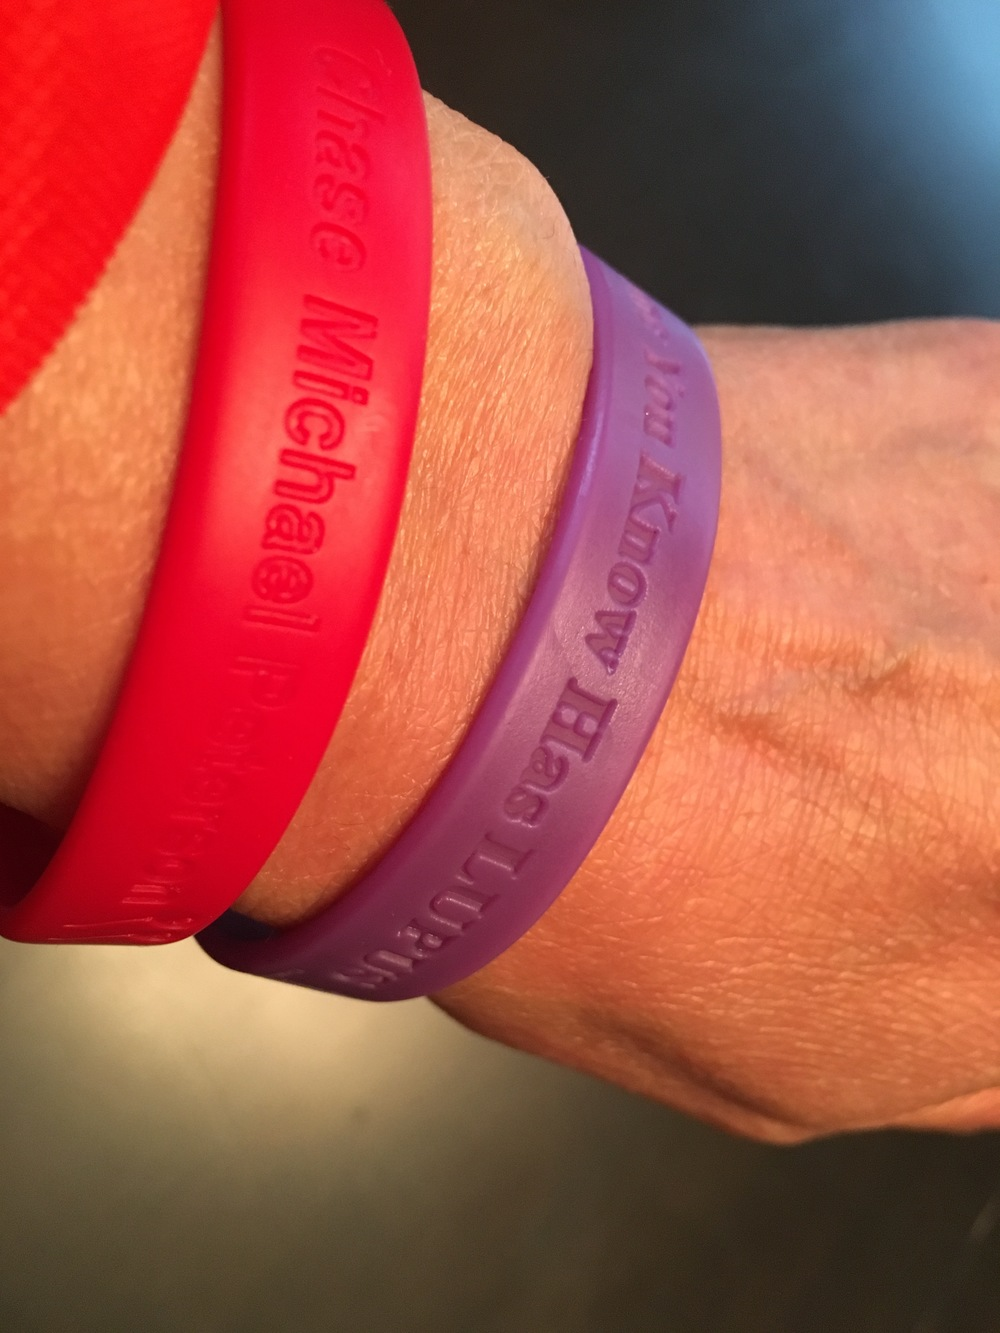 I will continue wearing this purple rubber bracelet that I've had on since April 12th (and haven't taken it off) until my new one arrives.